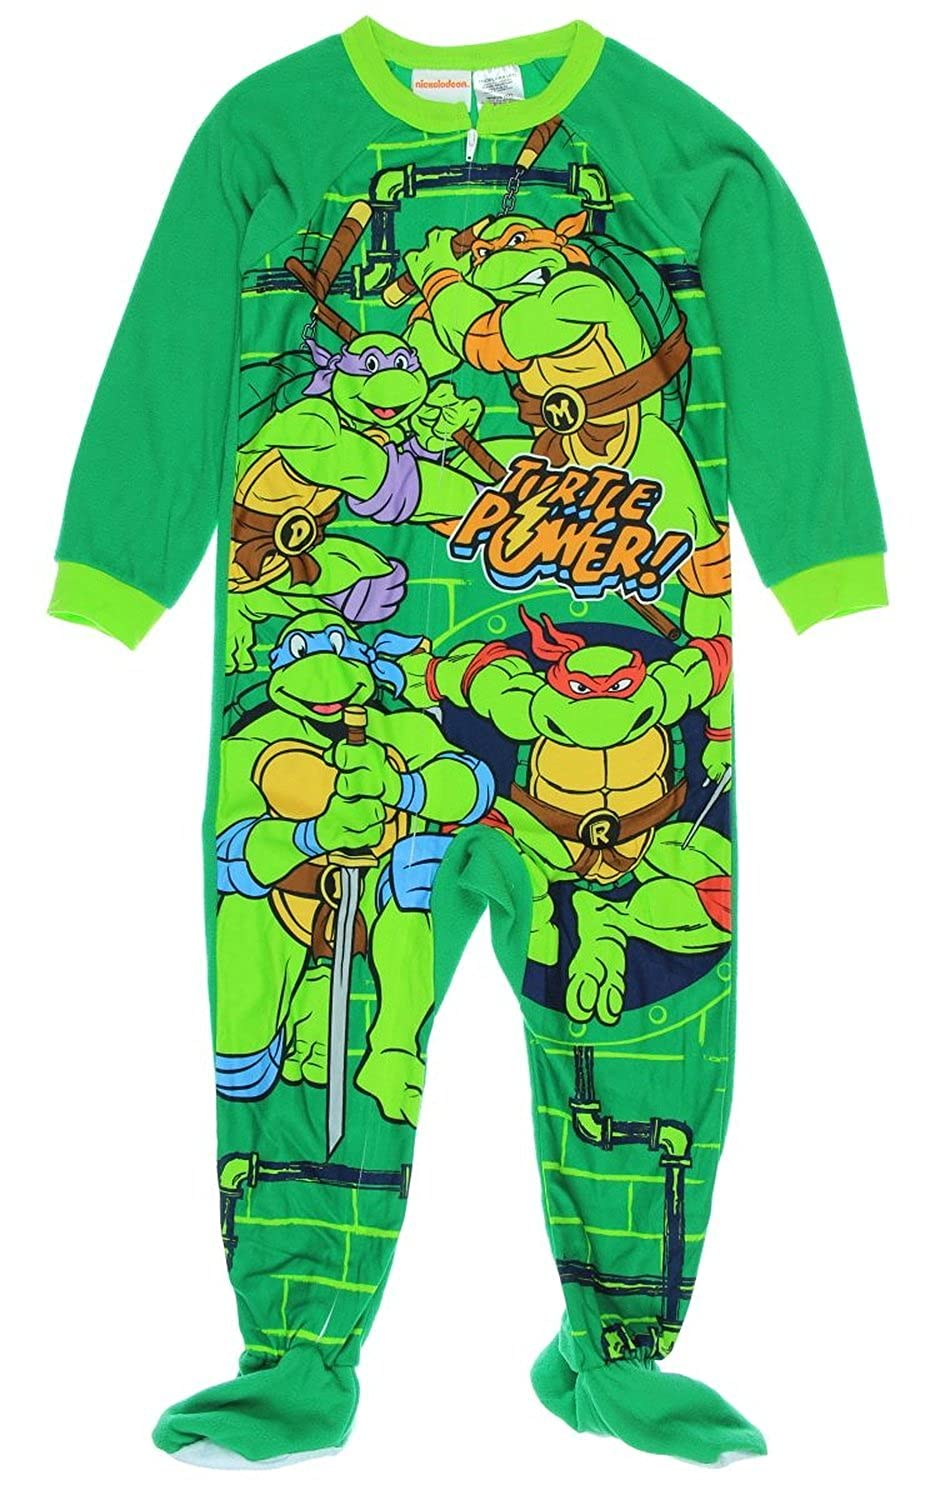 Teenage Mutant Ninja Turtles Little Boy Footed Sleeper Blanket Pajama Size 5T